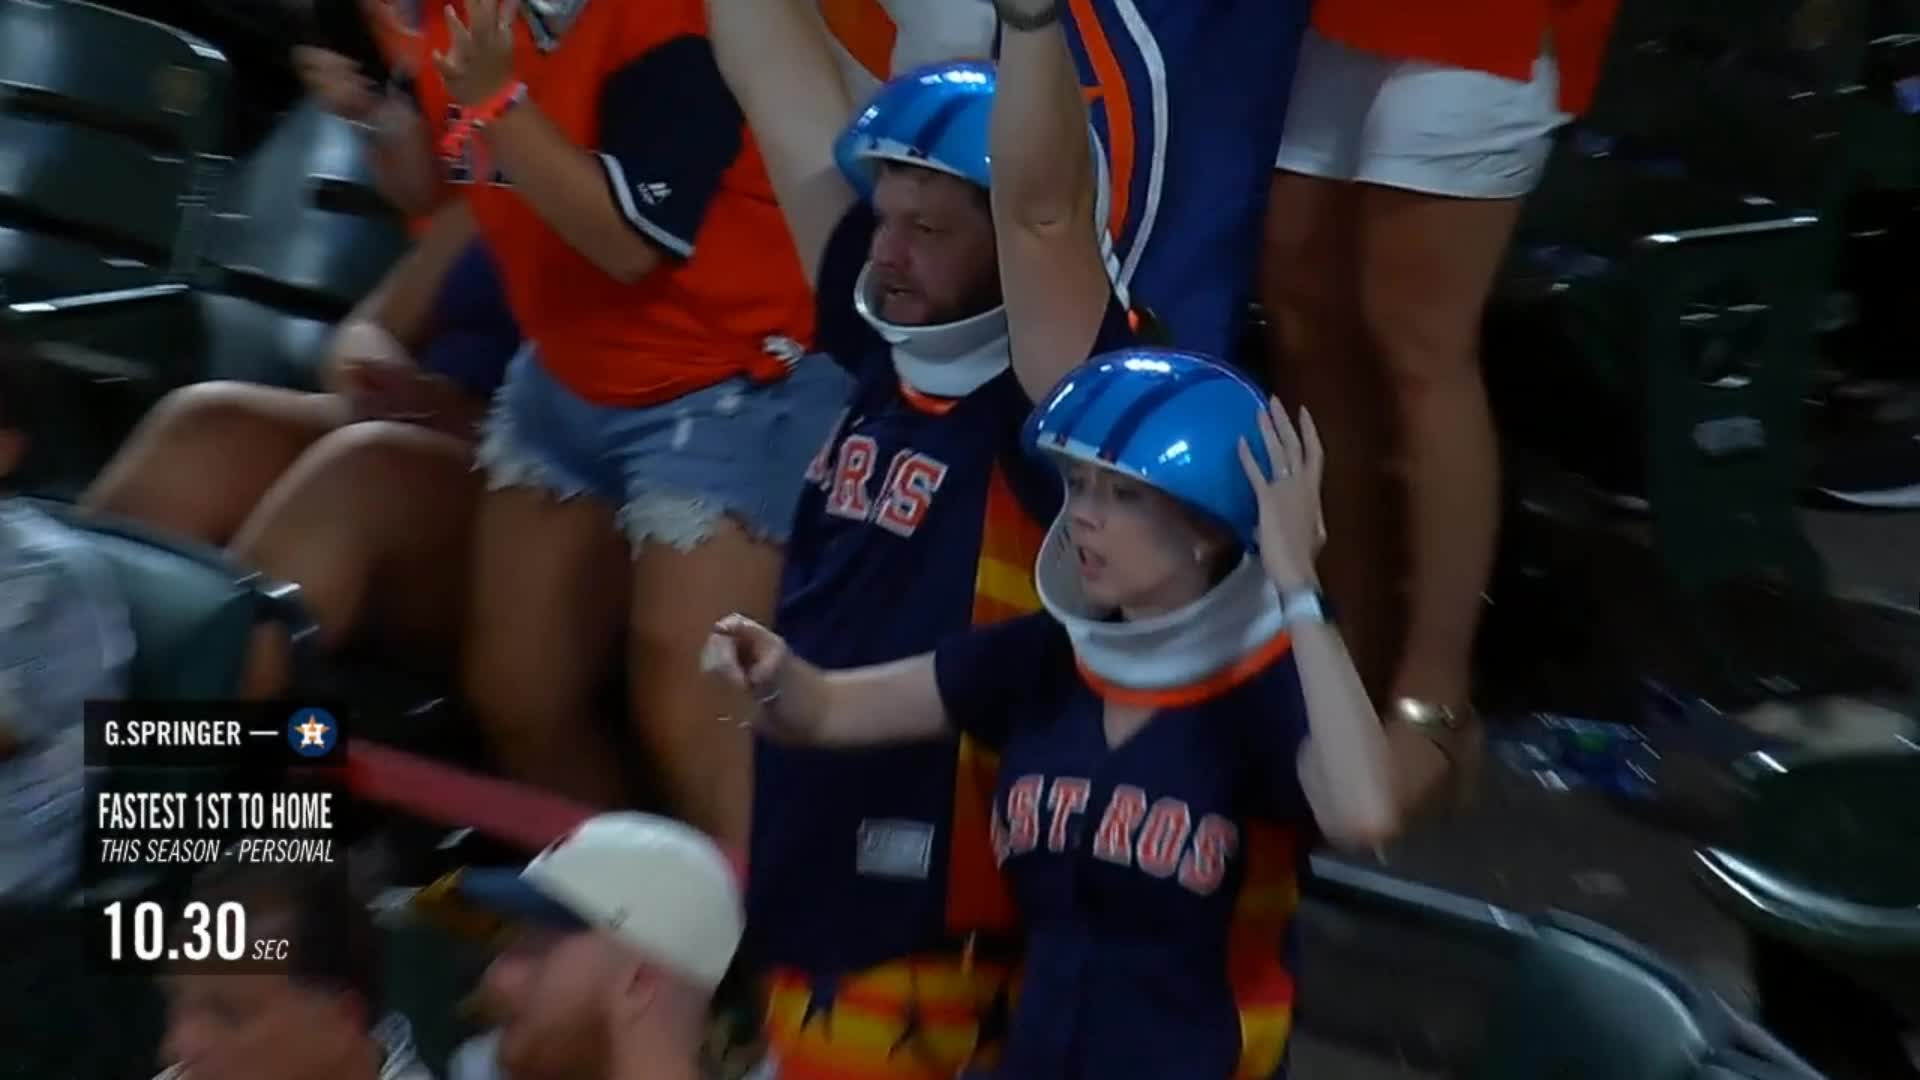 astros, baseball, houston, Astros Astronauts Going Crazy GIFs